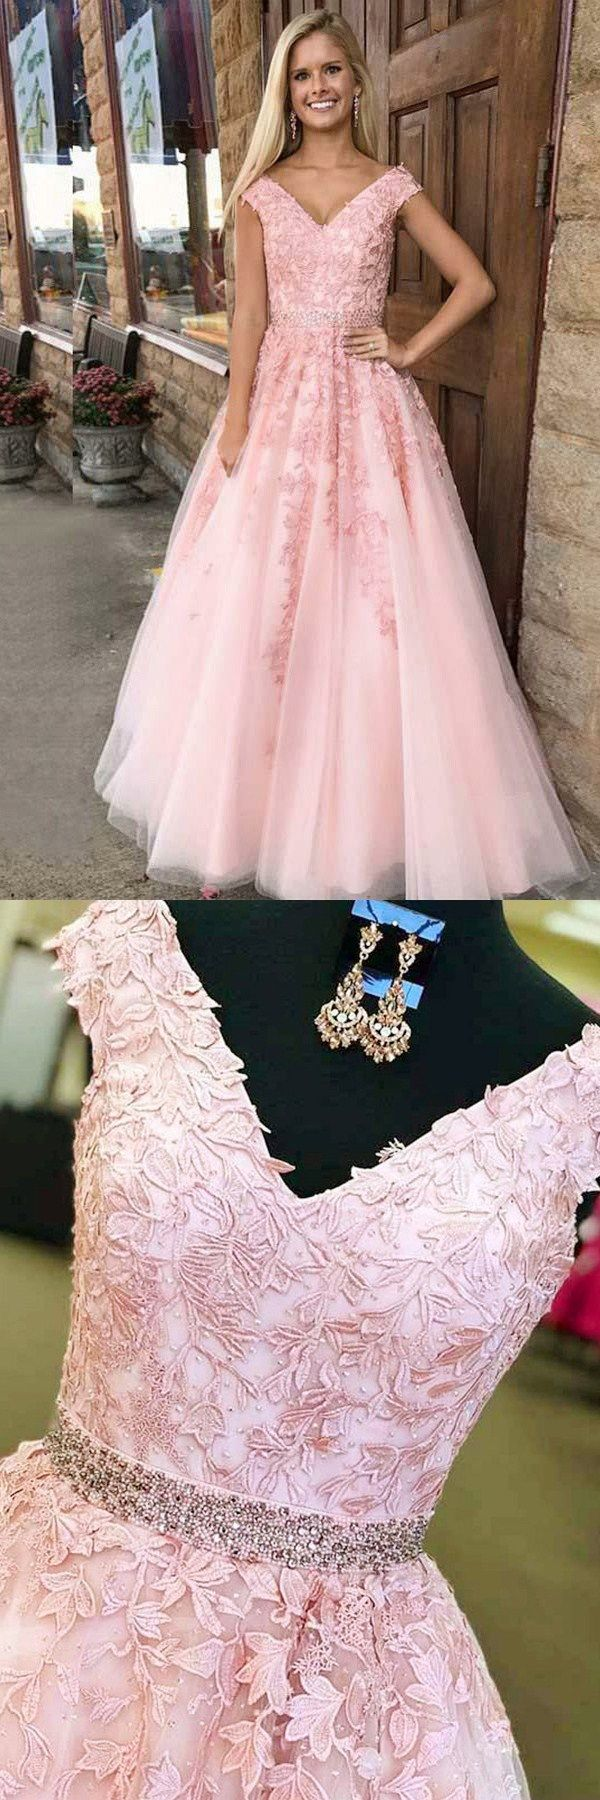 Aline vneck sweep train pink tulle prom dress with appliques